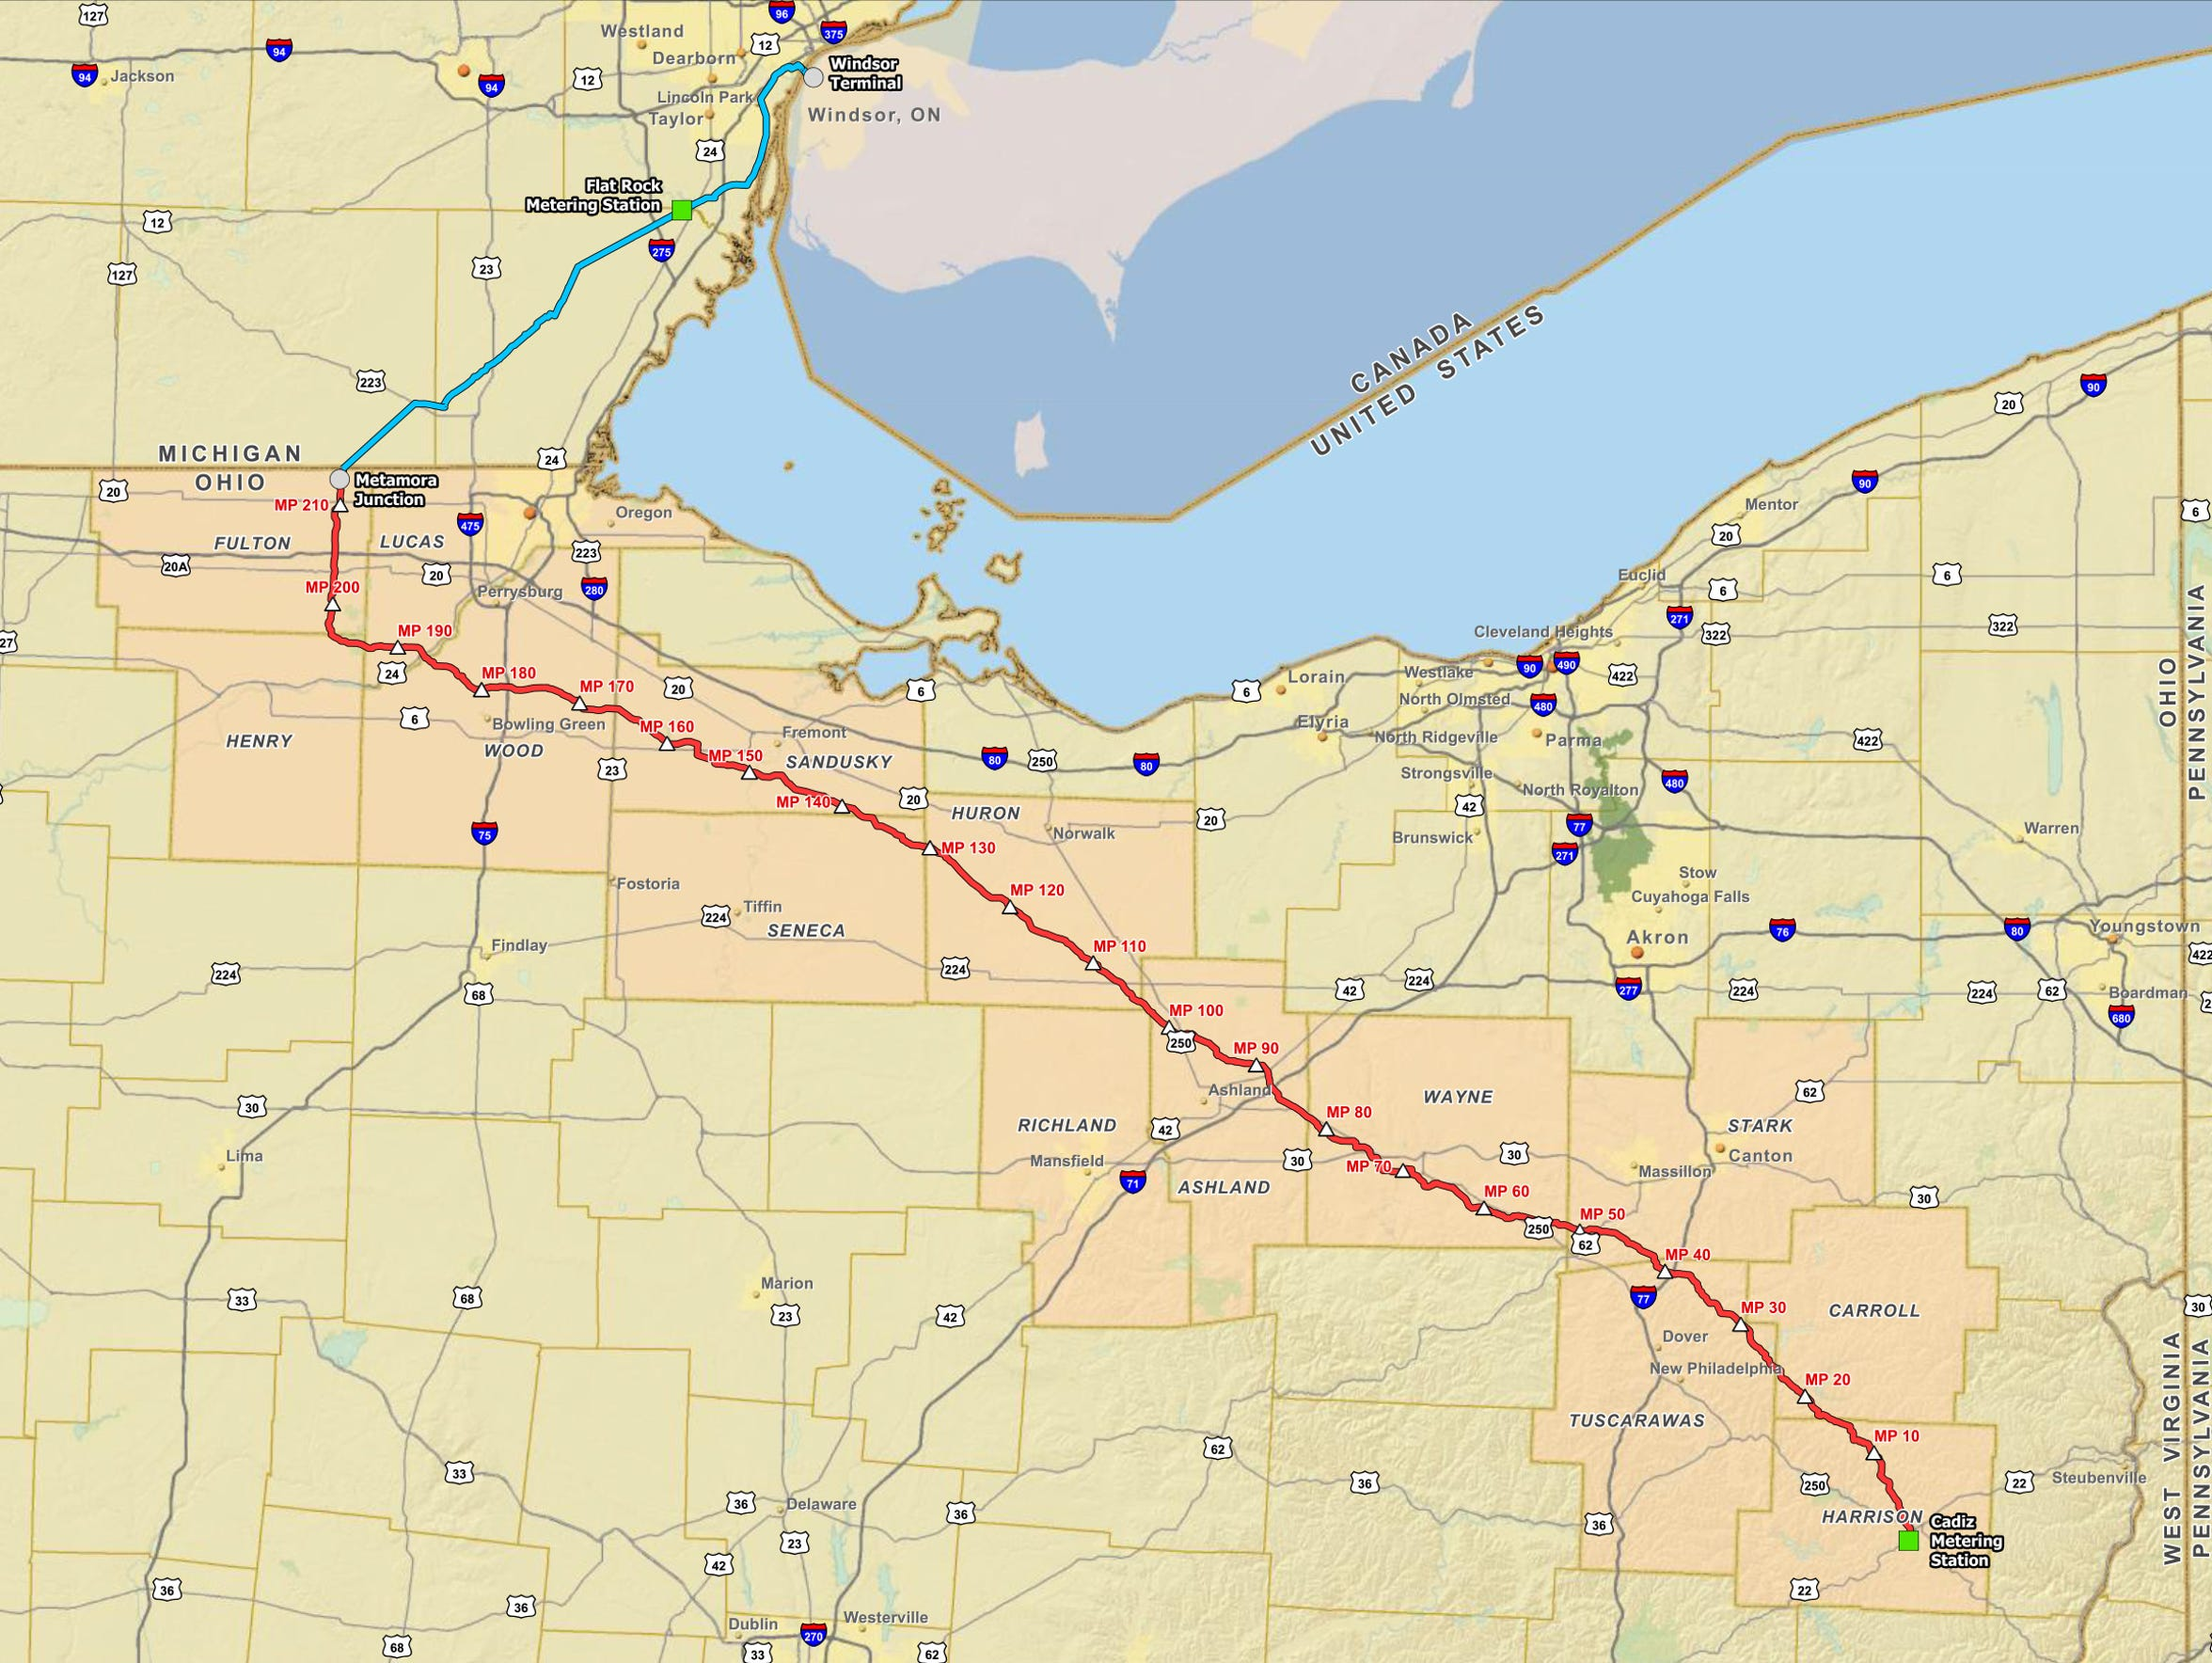 Proposed Utopia Pipeline preliminary overview map provided